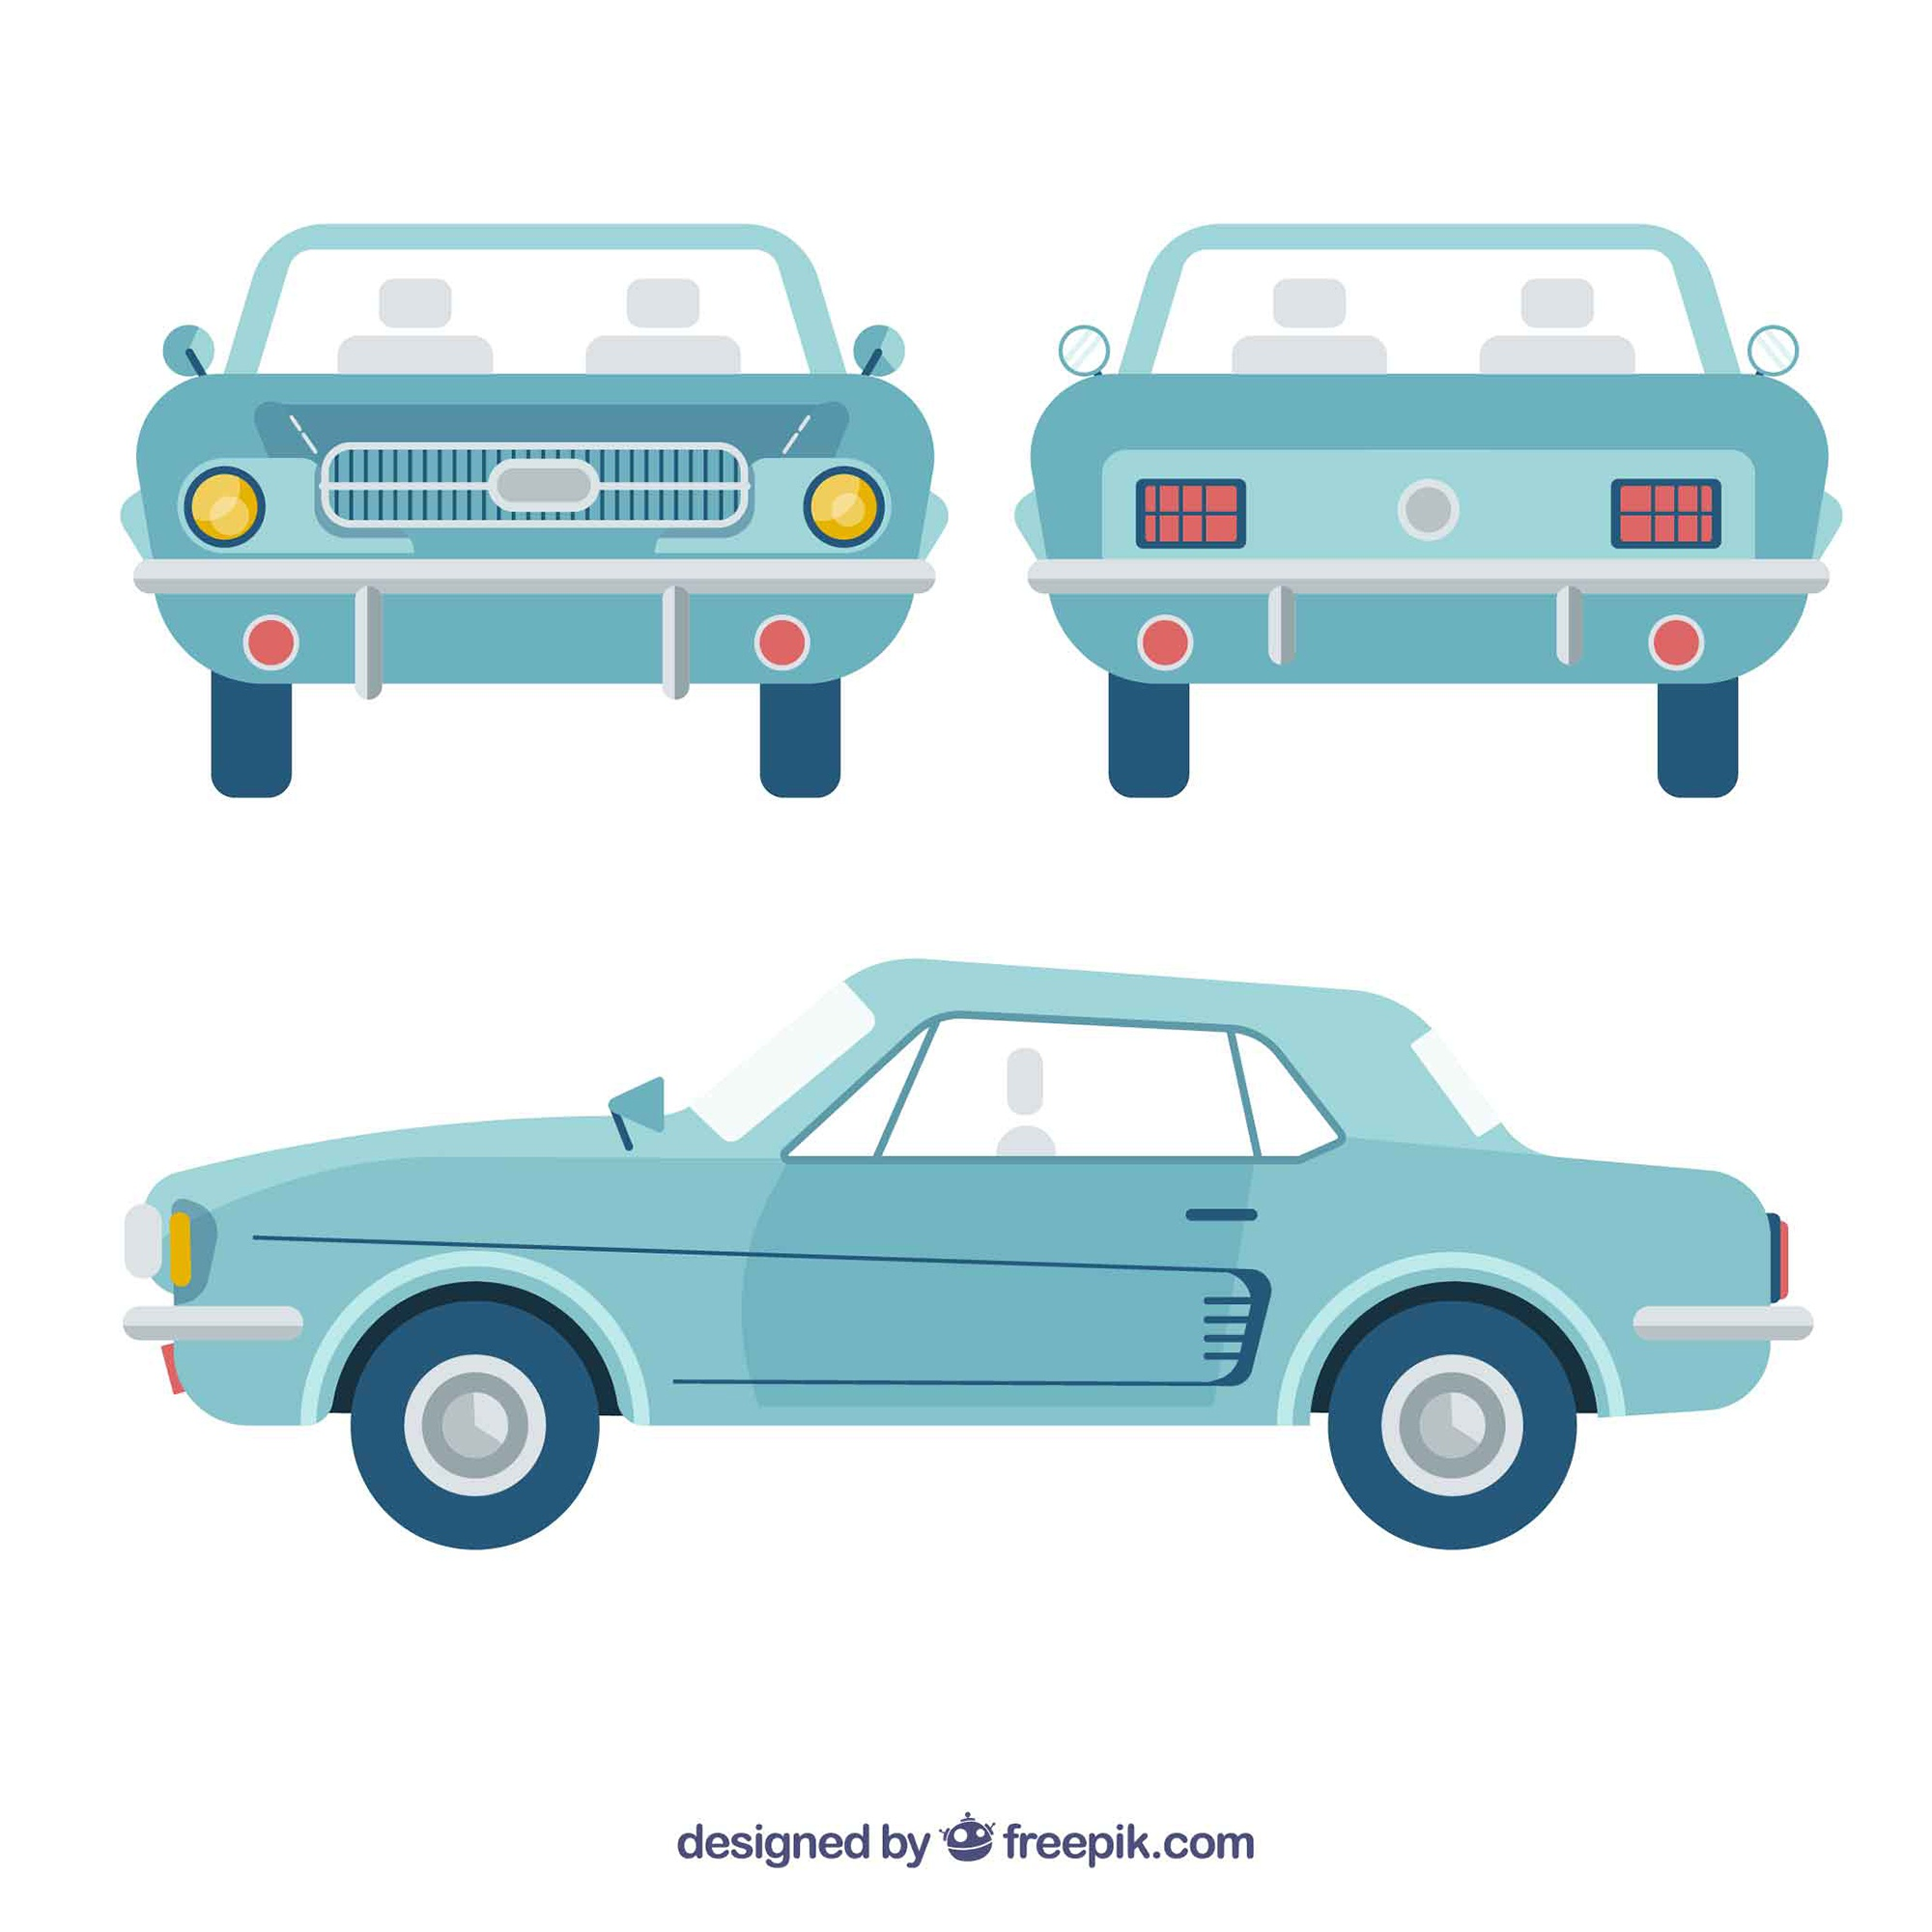 Different views of vintage car